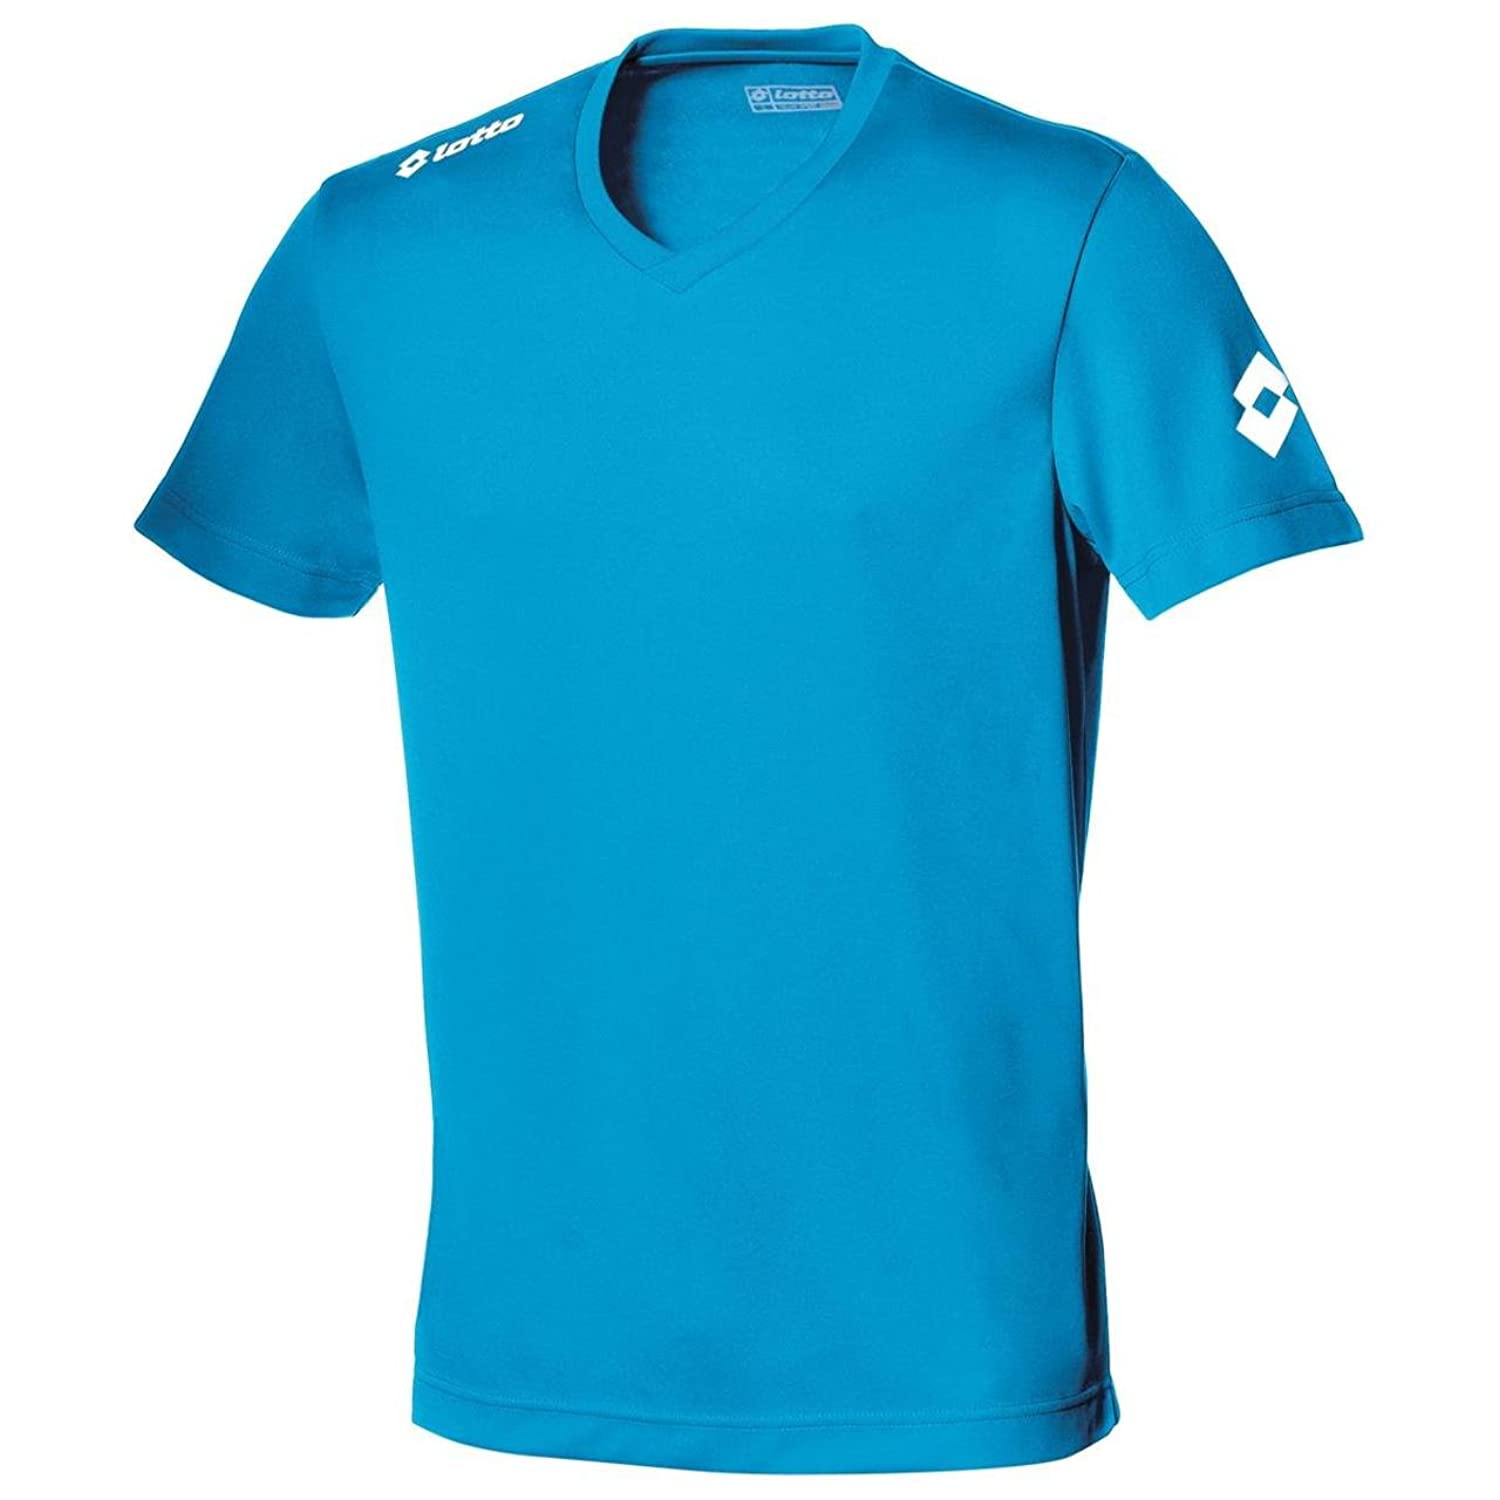 New Lotto Football Jersey Team Evo Traditional V Neck Fast dry Mens Sports Shirt